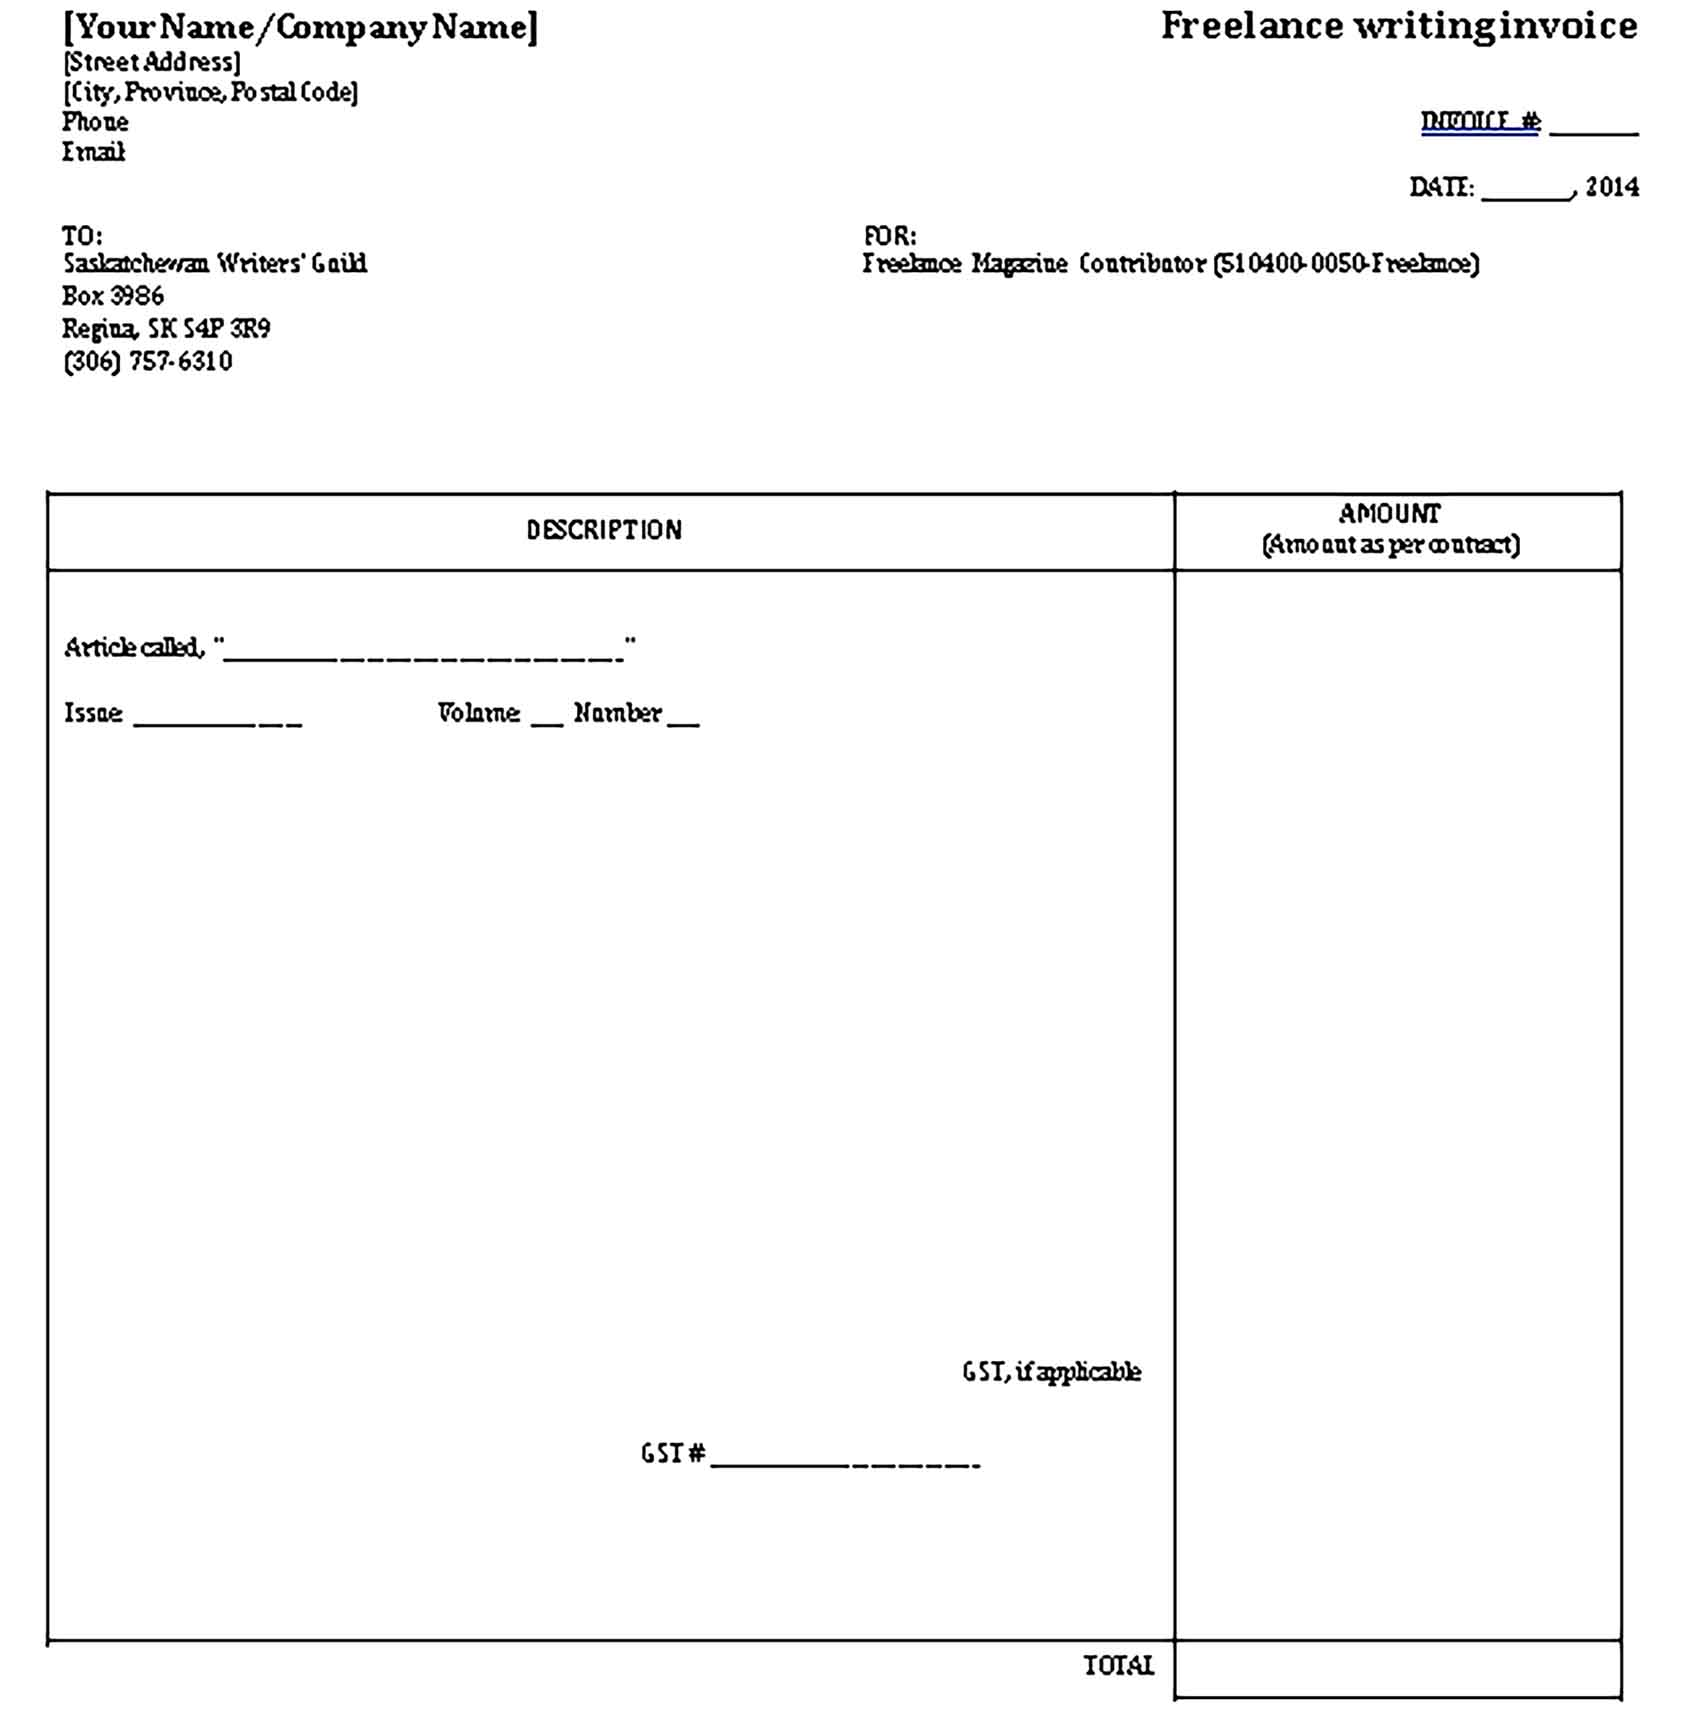 Sample Templates freelance writing invoice